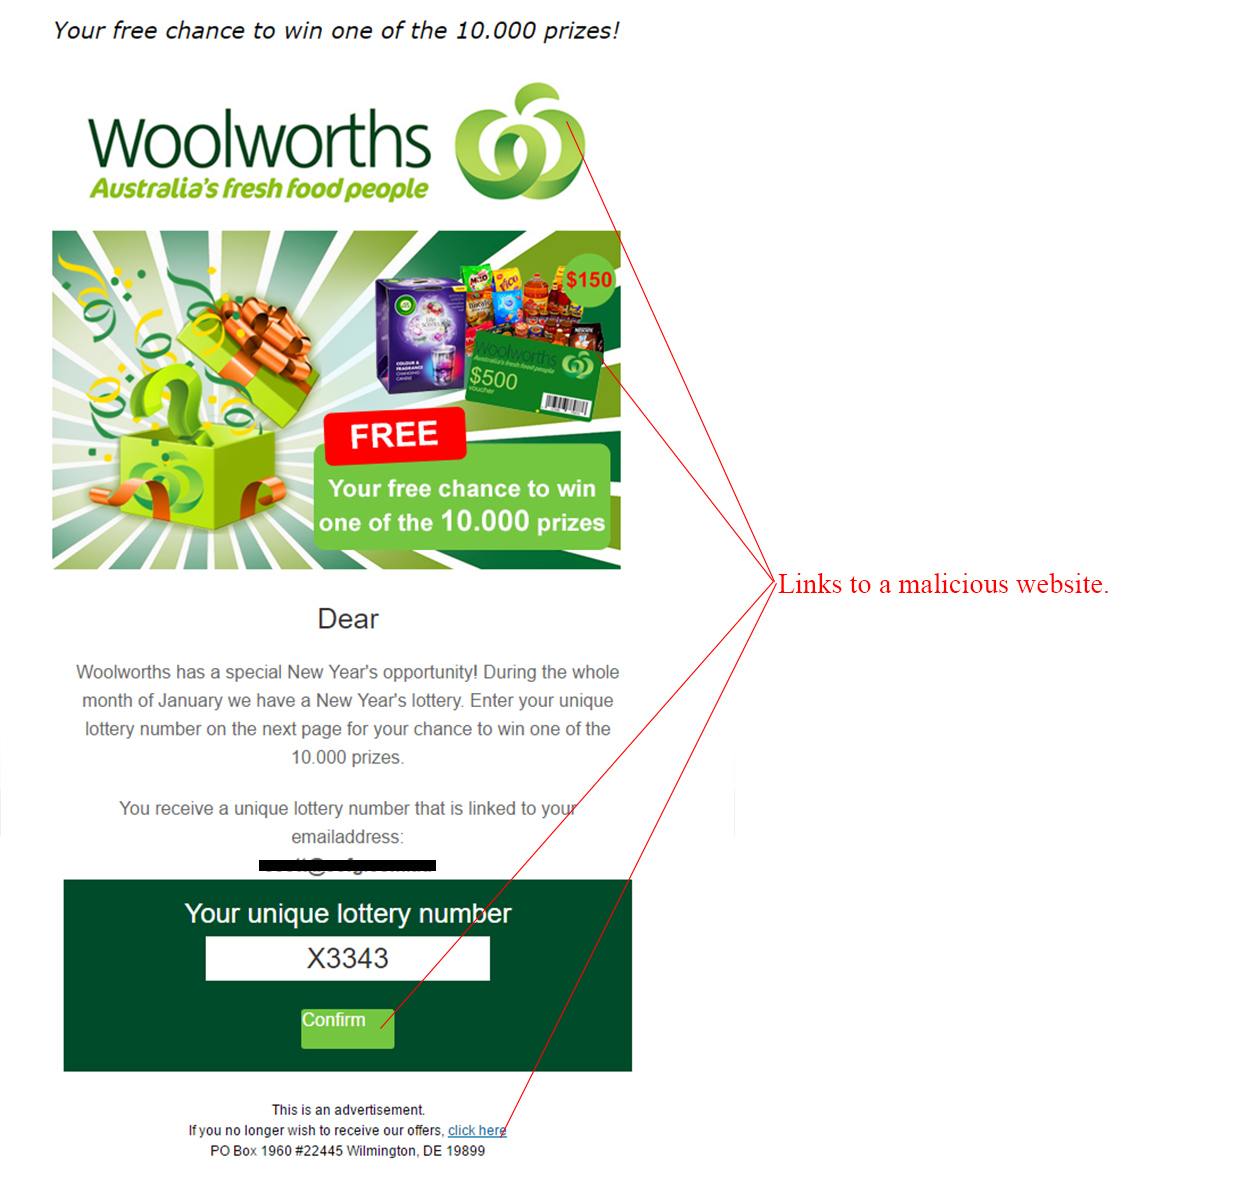 MailShark Woolworths Lottery Competition Scam